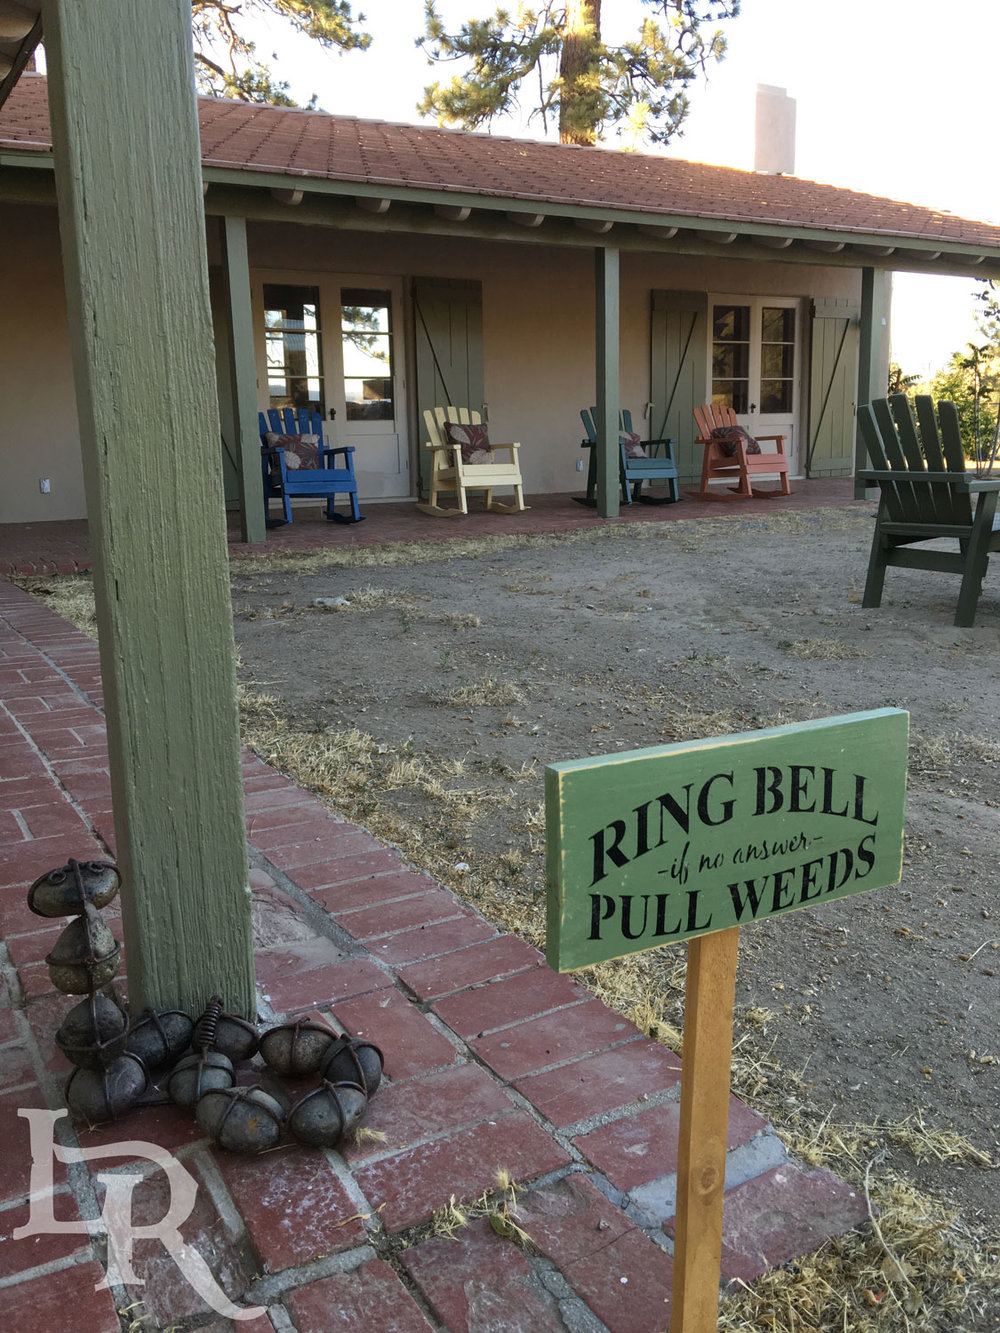 Pull-weeds-sign-by-fire-pit.jpg